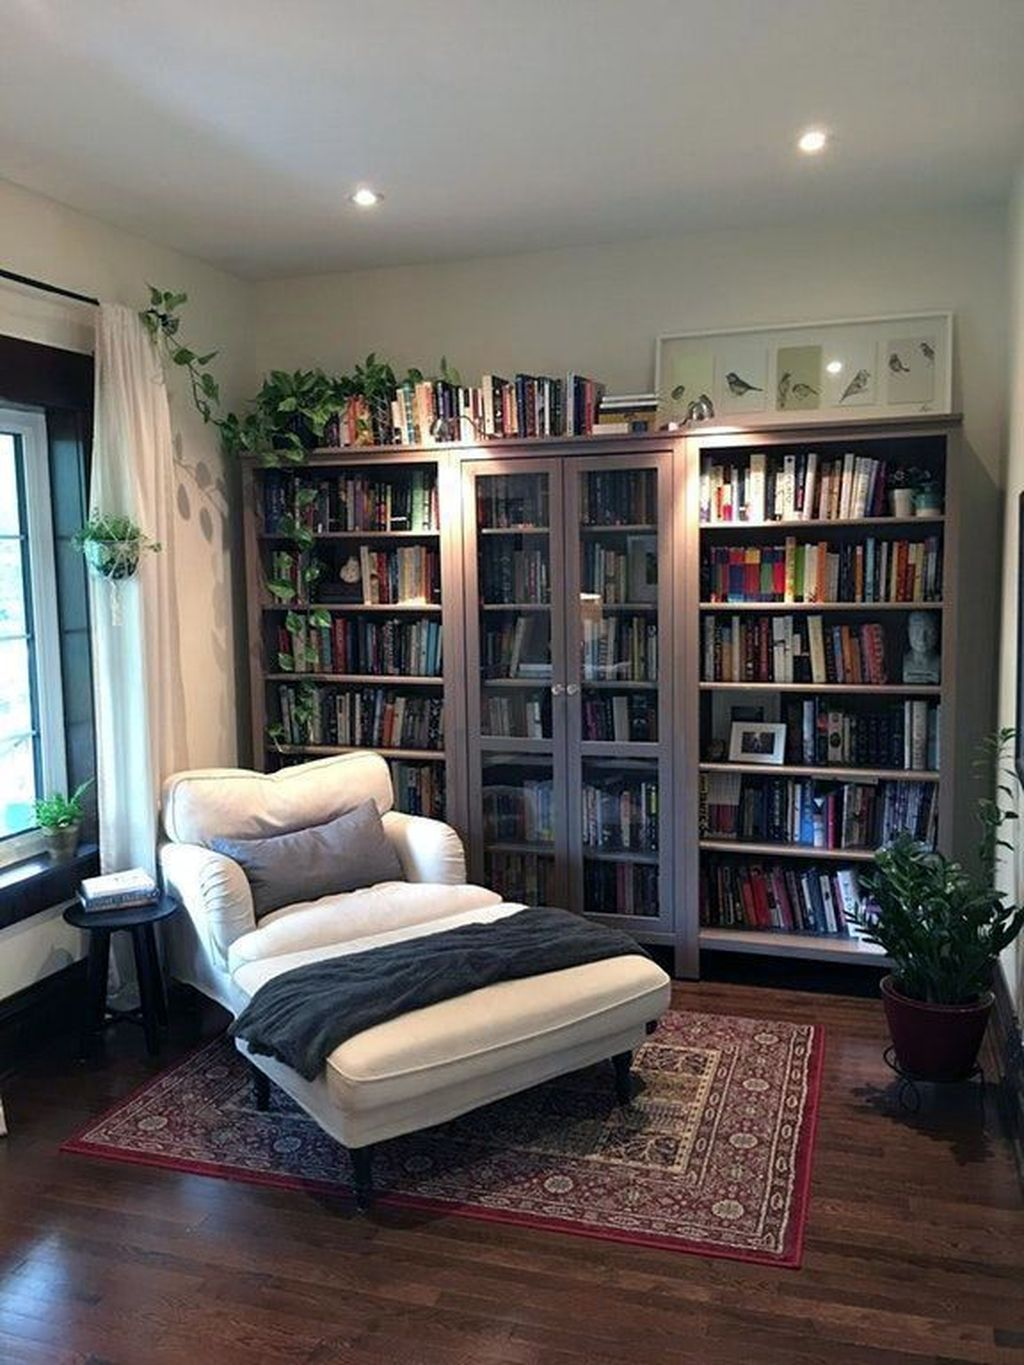 Small Library Room Decorating Ideas: 40+ Magnificient Home Design Ideas With Library You Should